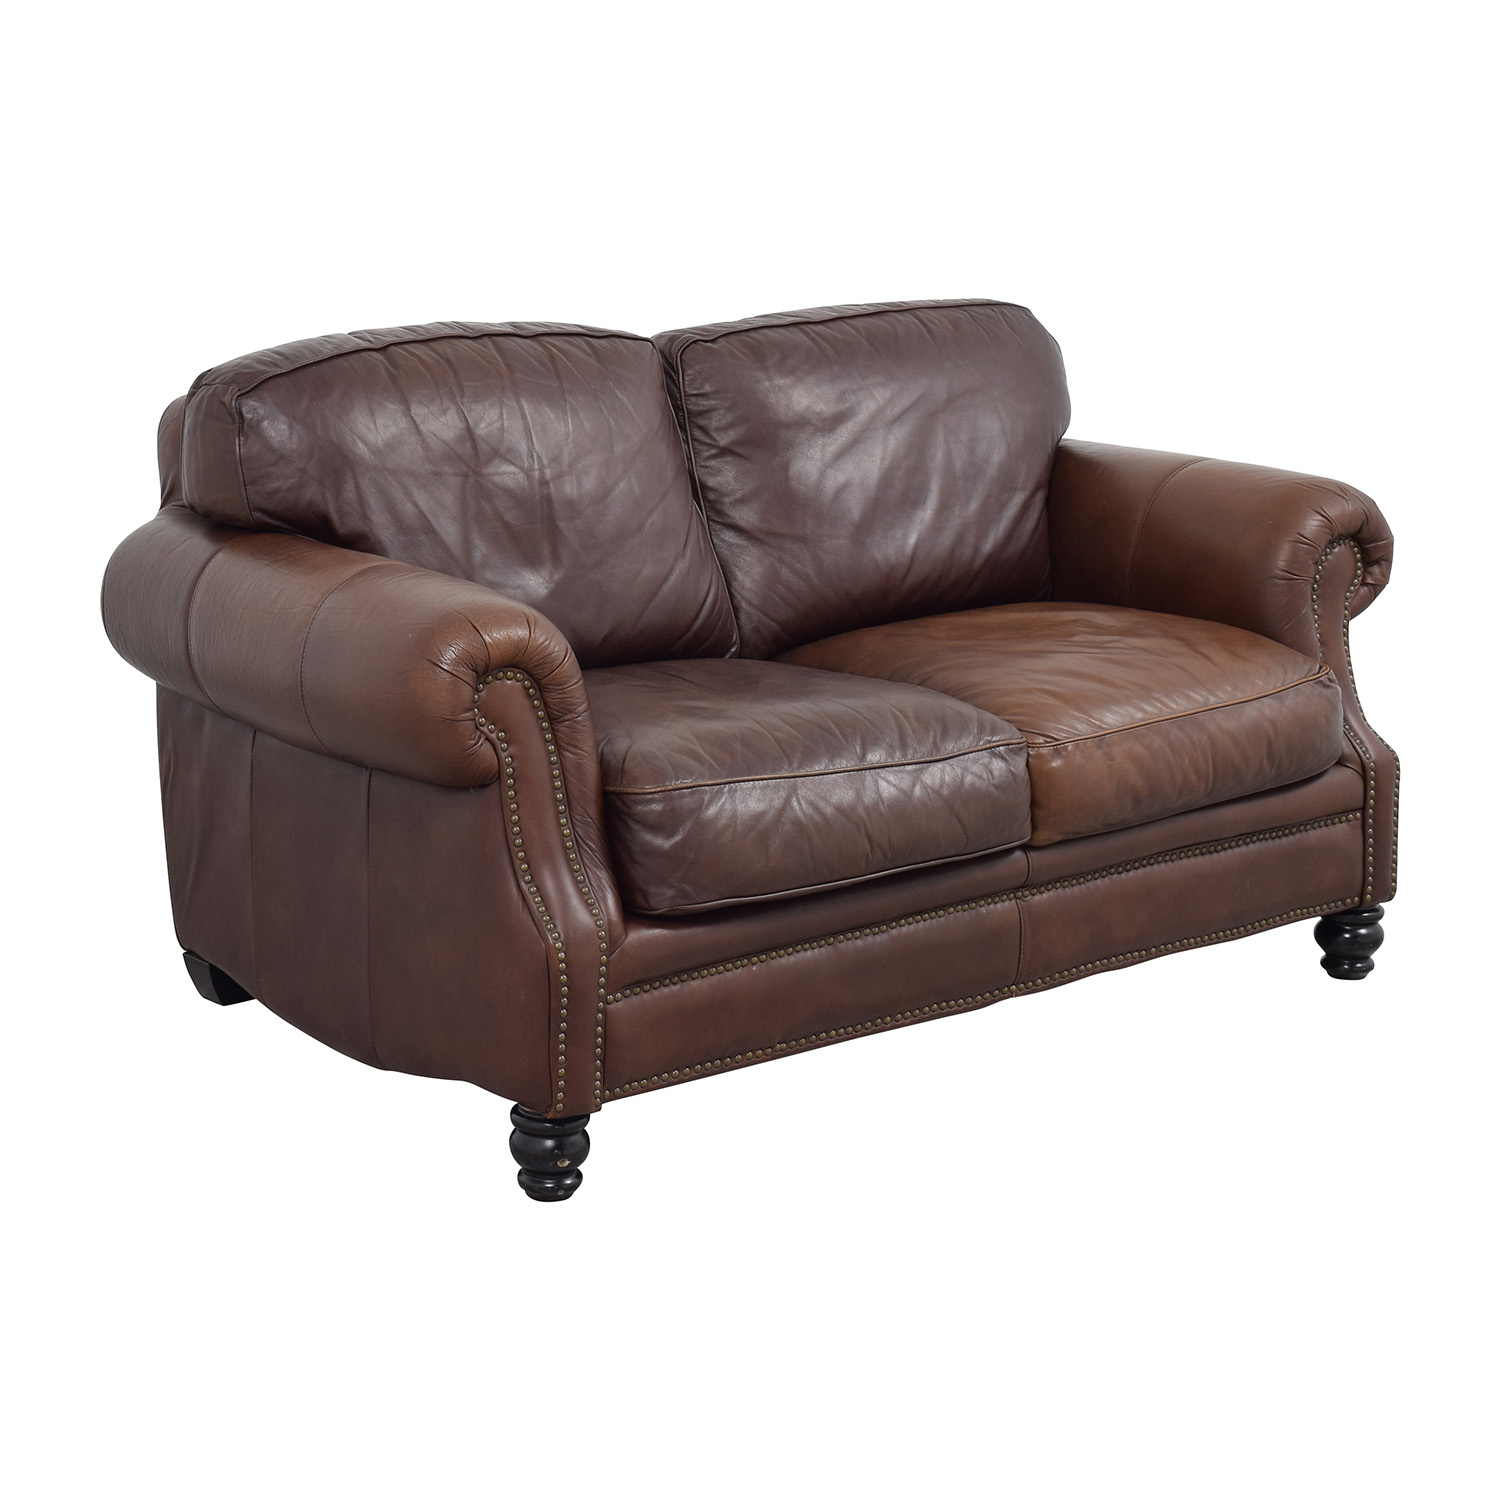 secondhand leather sofas costco sofa sectional 68% off - brown studded loveseat /